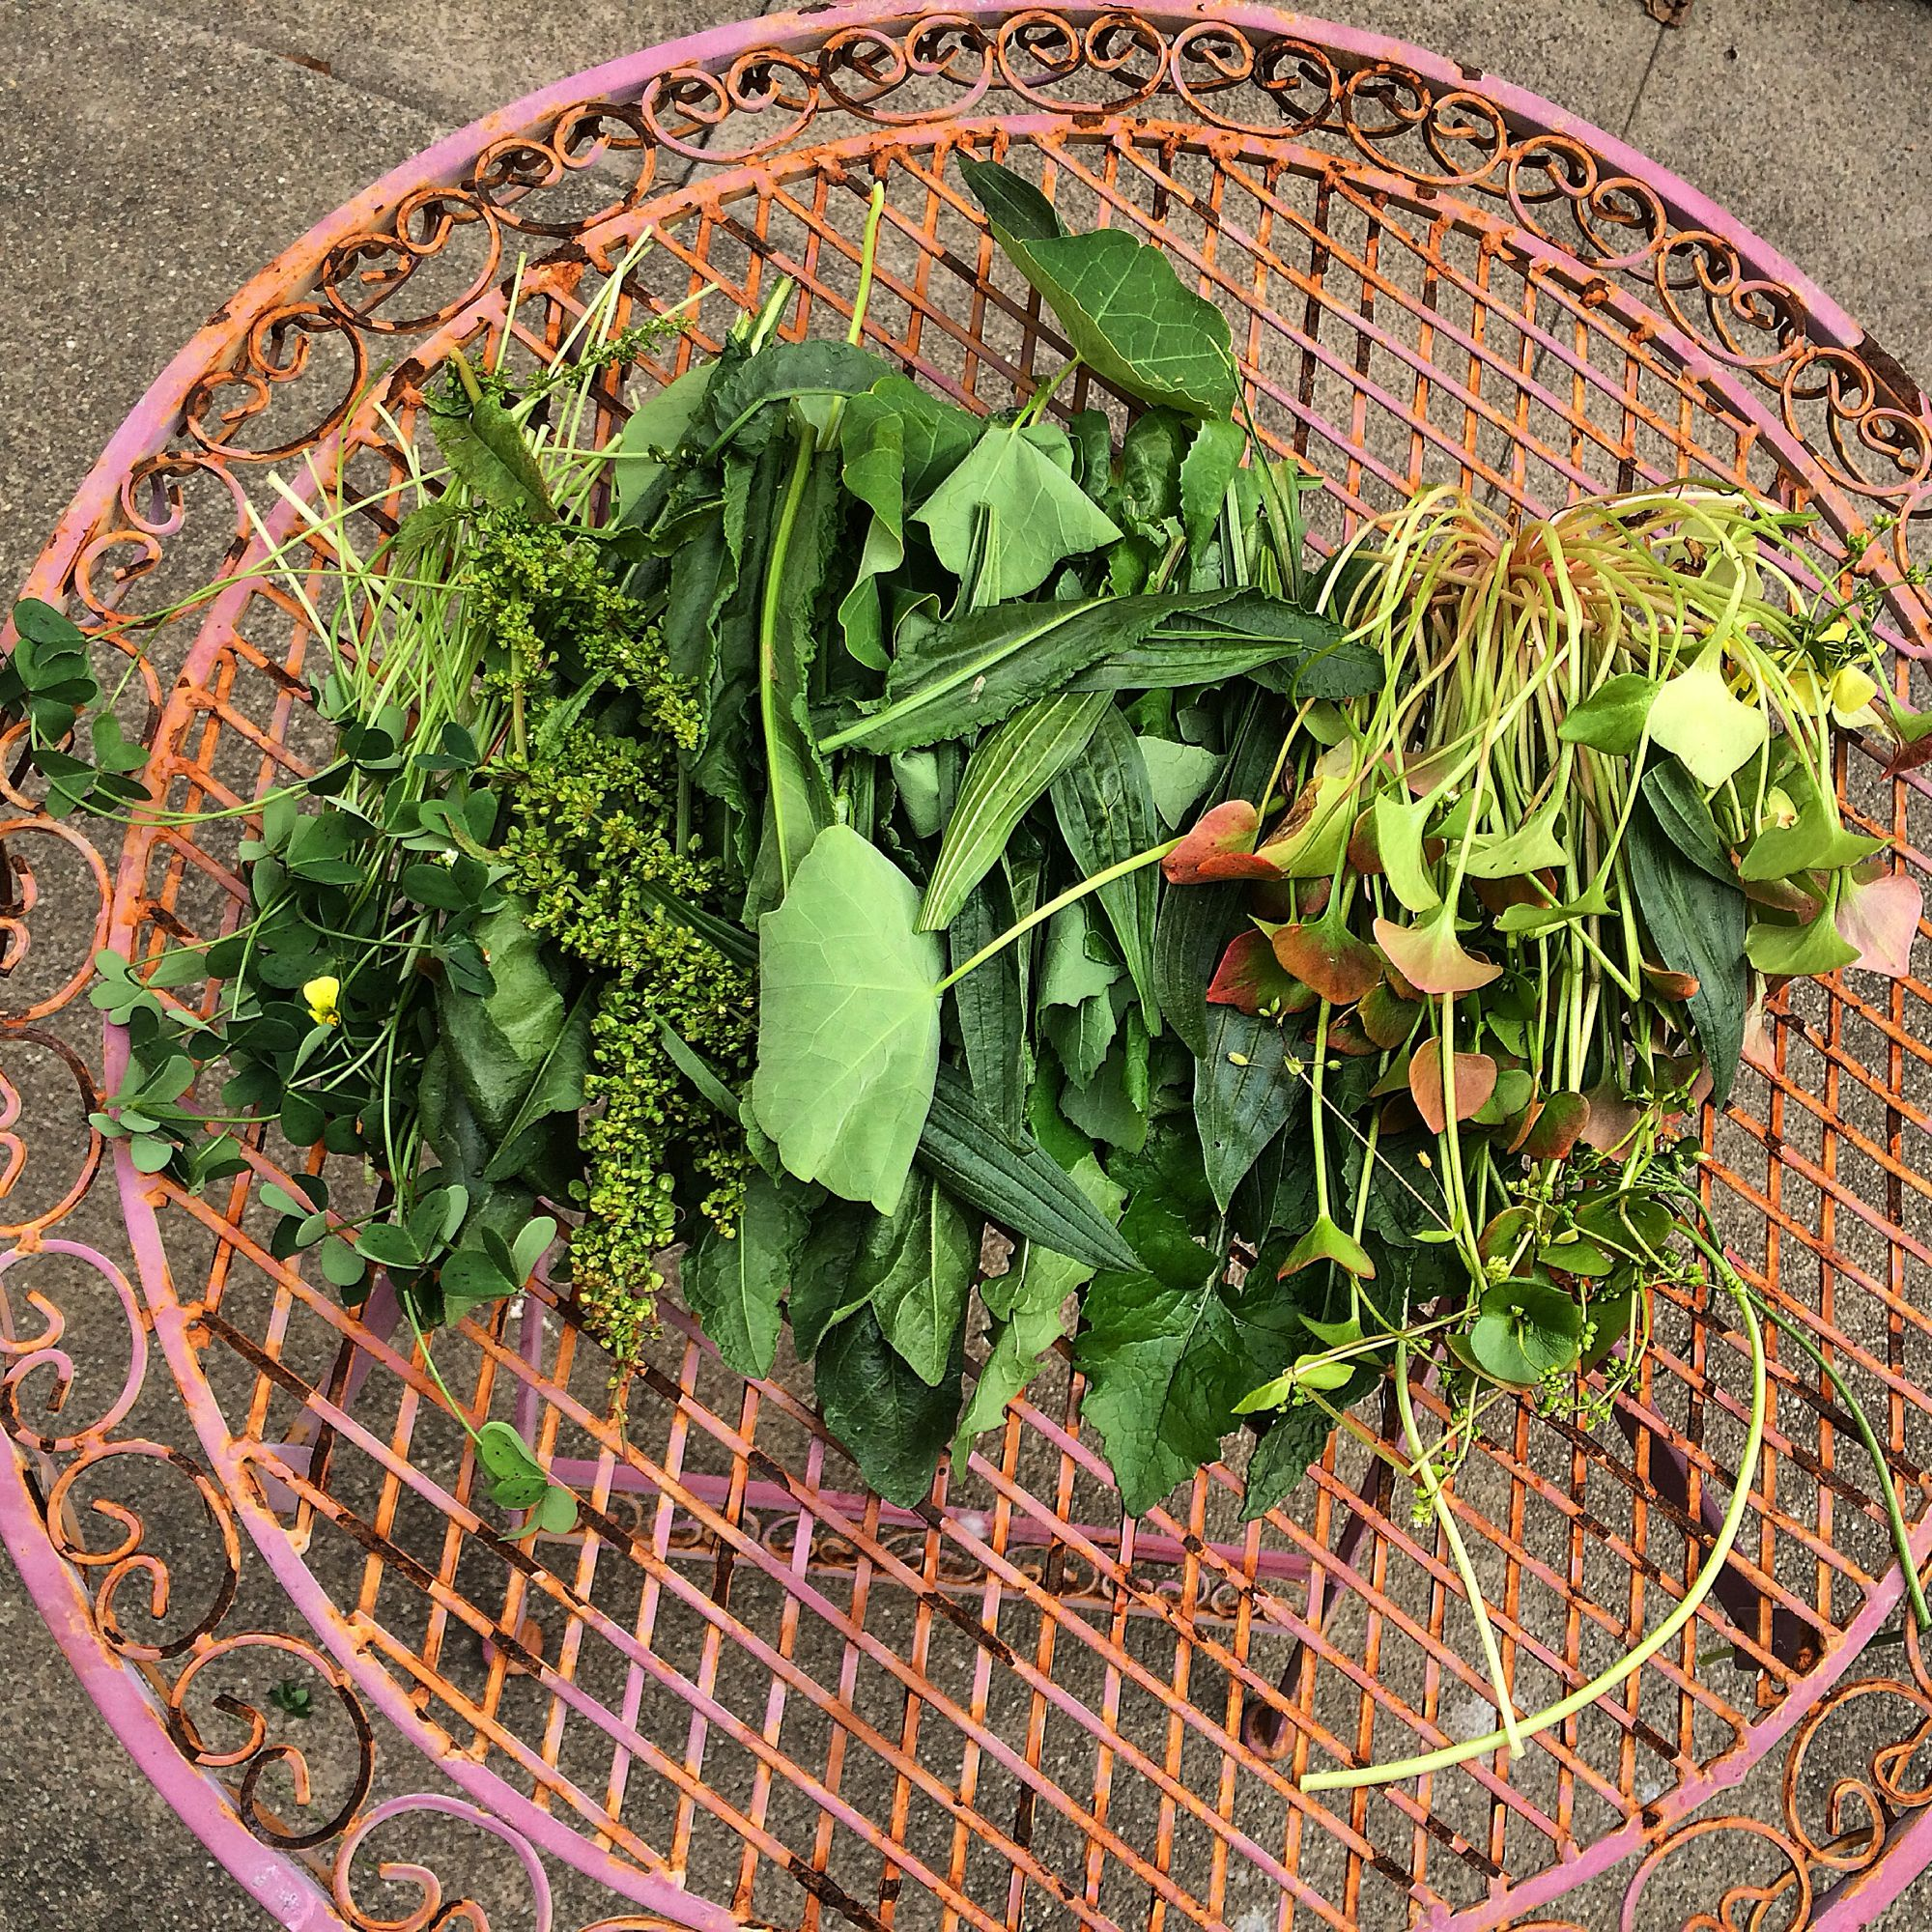 Dock leaves and seeds in an array of other wild edible plants - can you find the it?